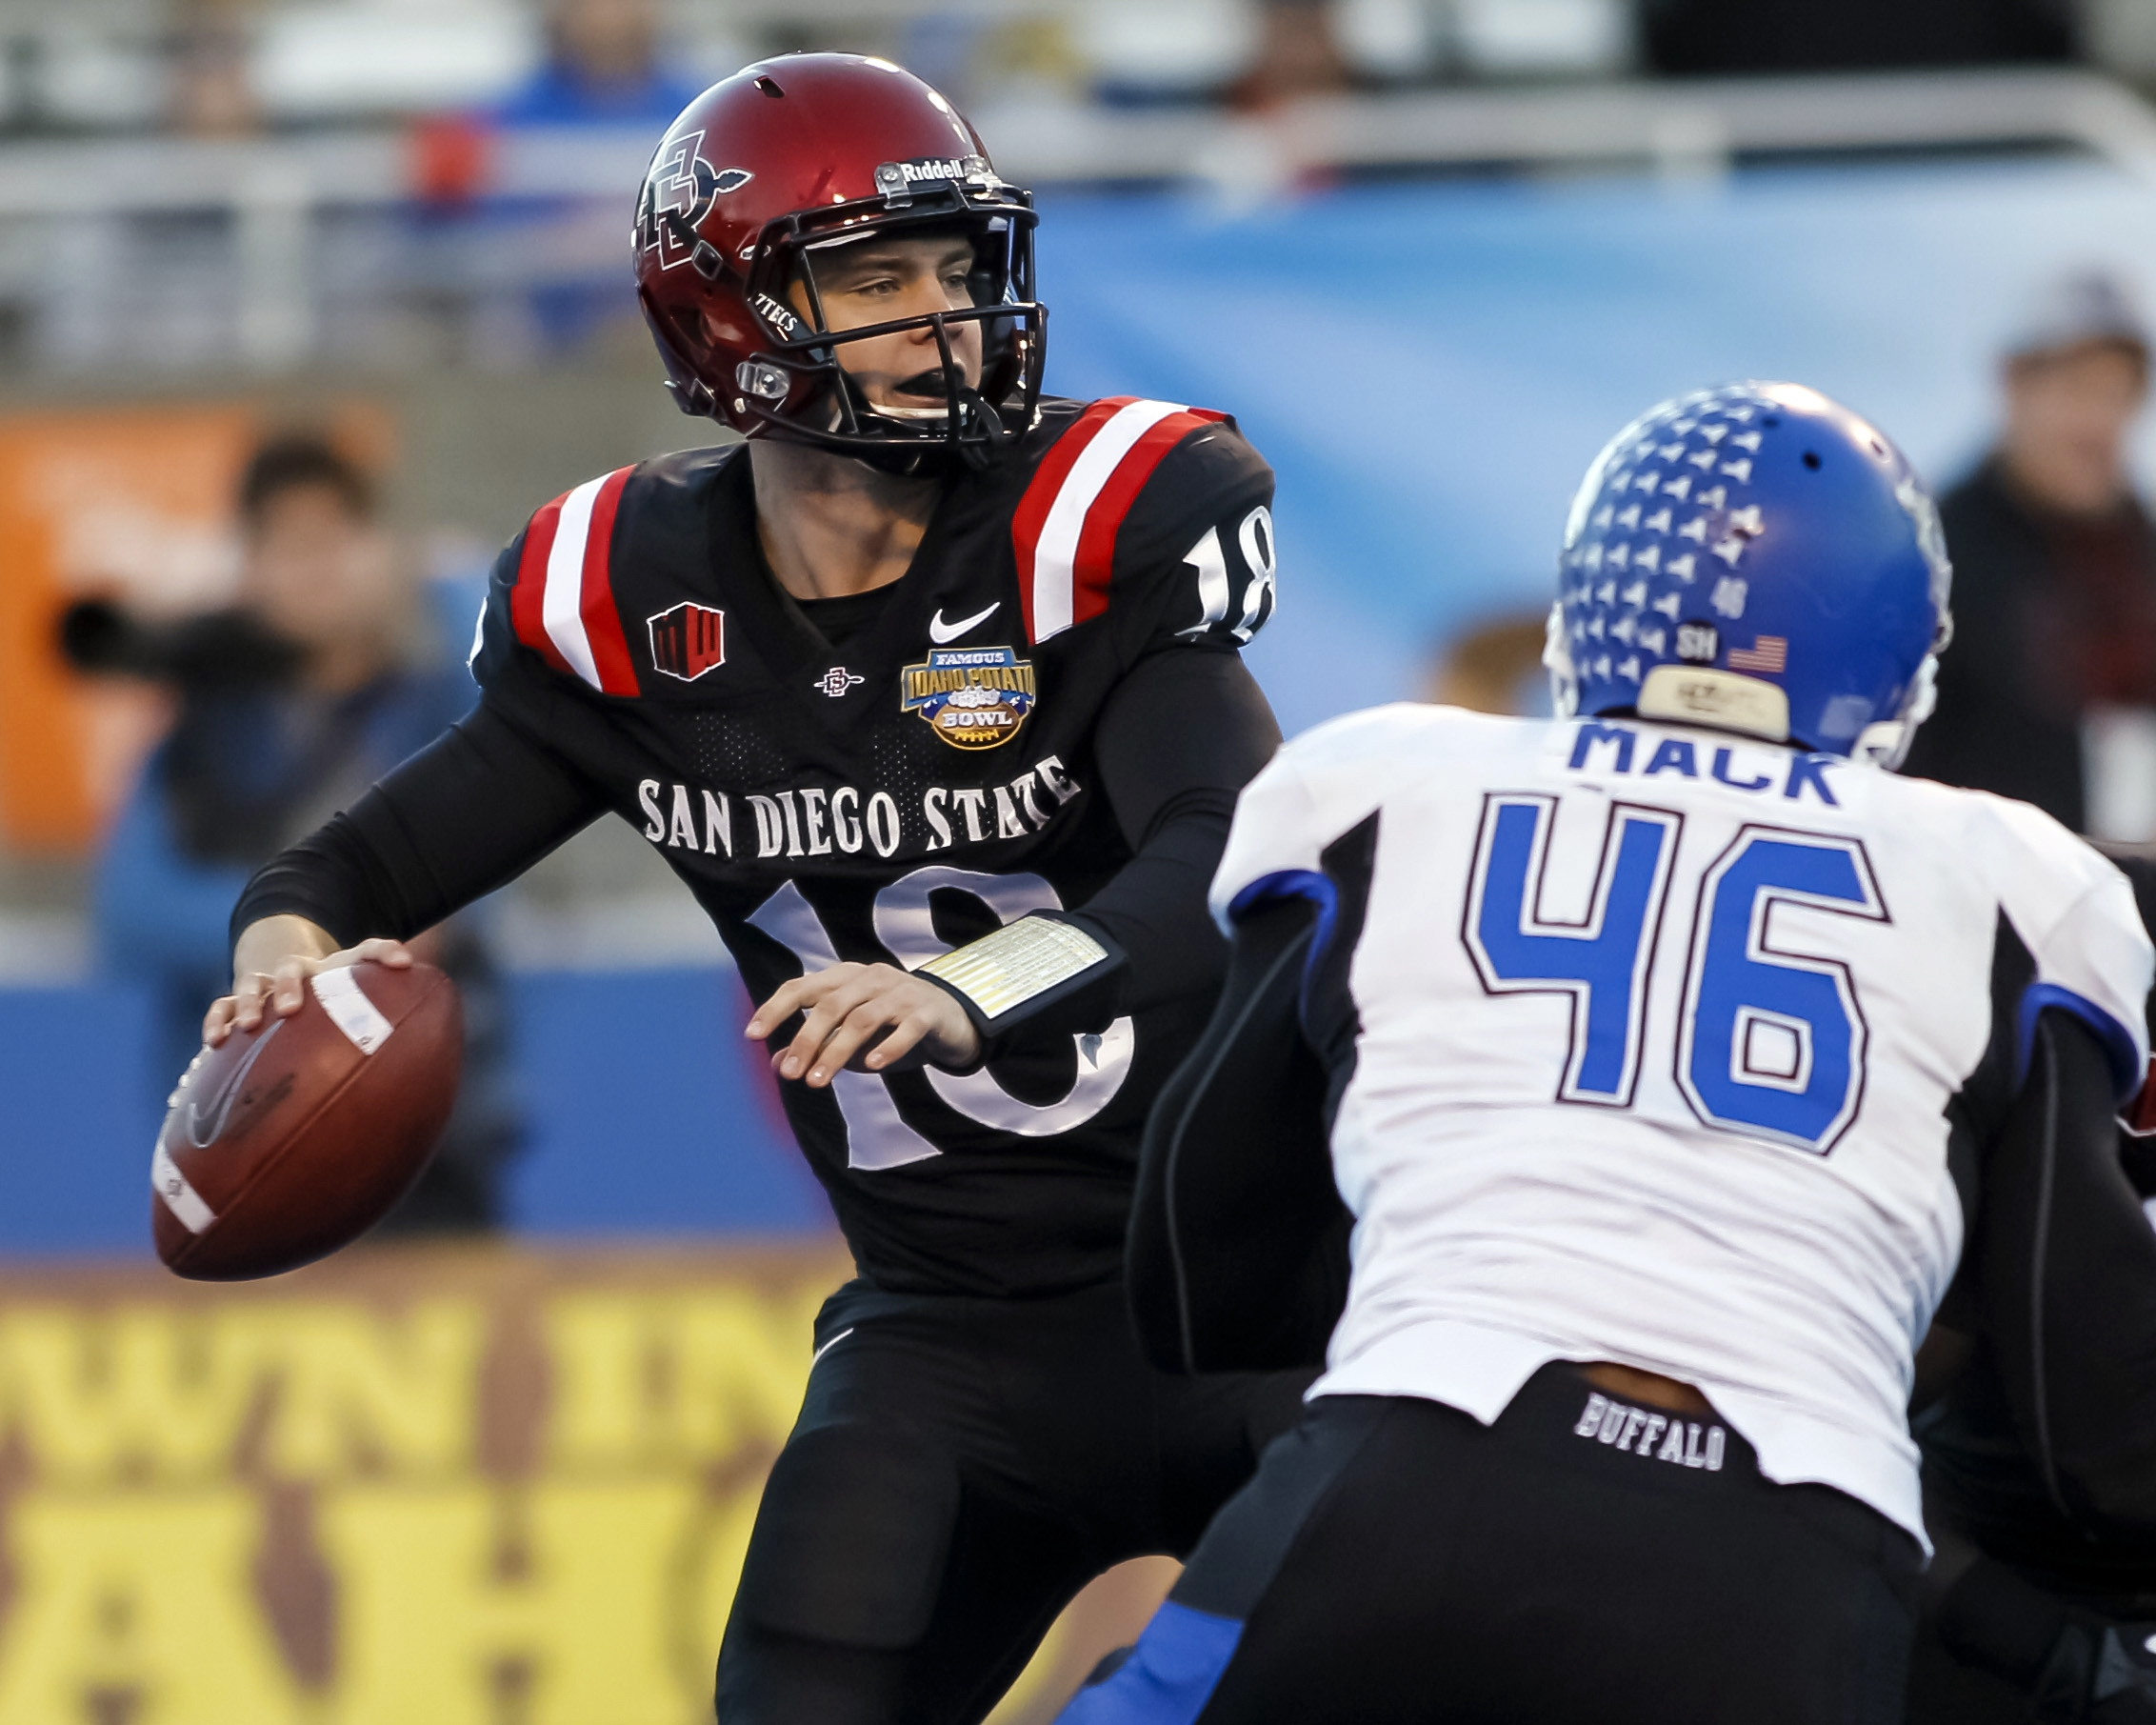 San Diego State quarterback Quinn Kaehler looks to throw as UB's Khalil Mack closes in during Saturday's contest in Boise, Idaho. (AP Photo/Otto Kitsinger)